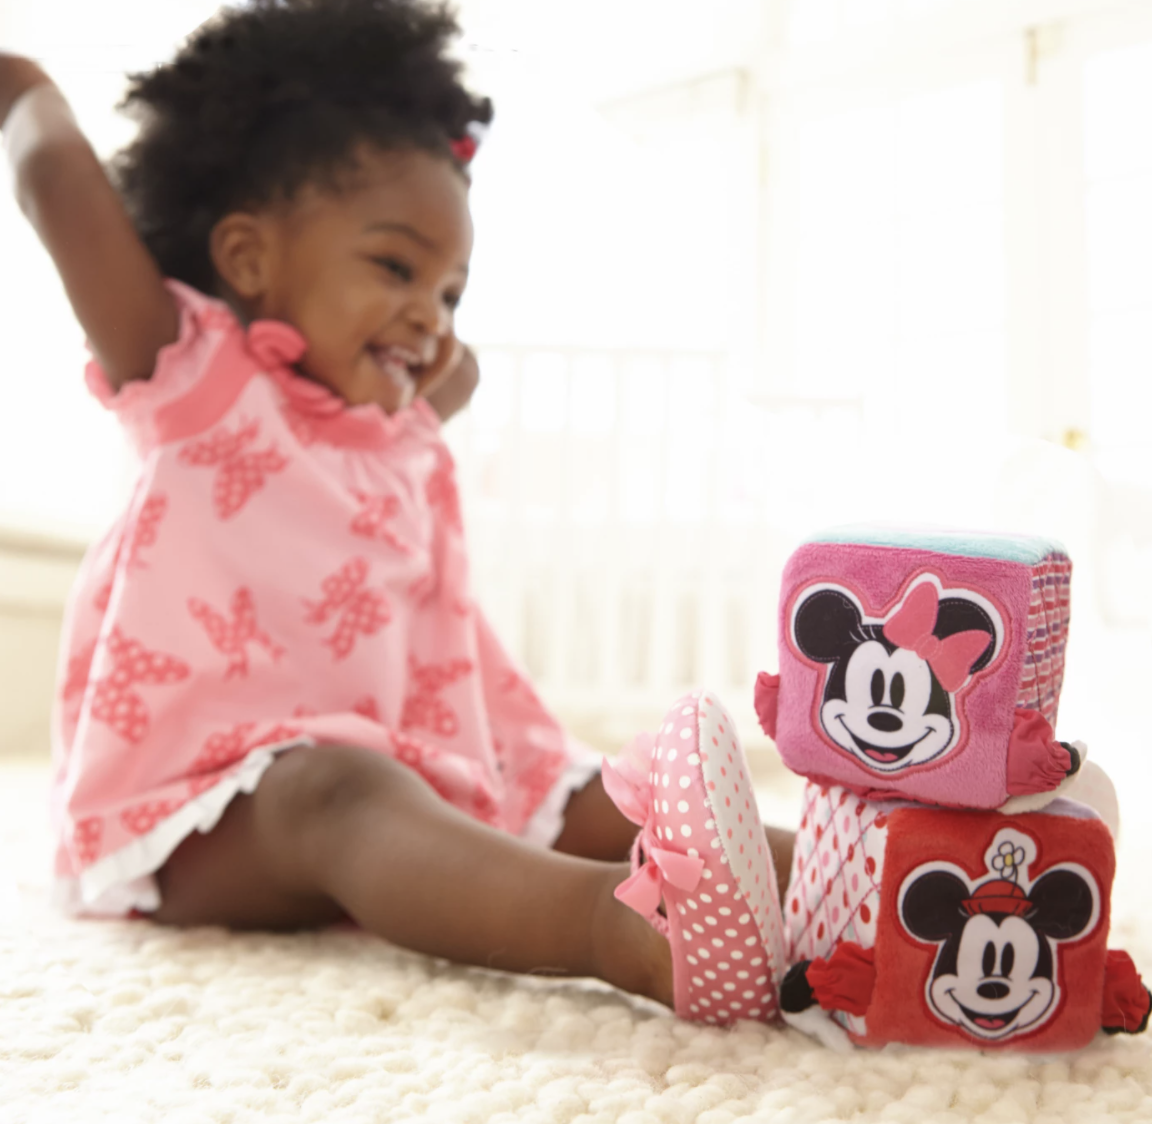 a baby playing with the soft blocks with minnie mouse on them